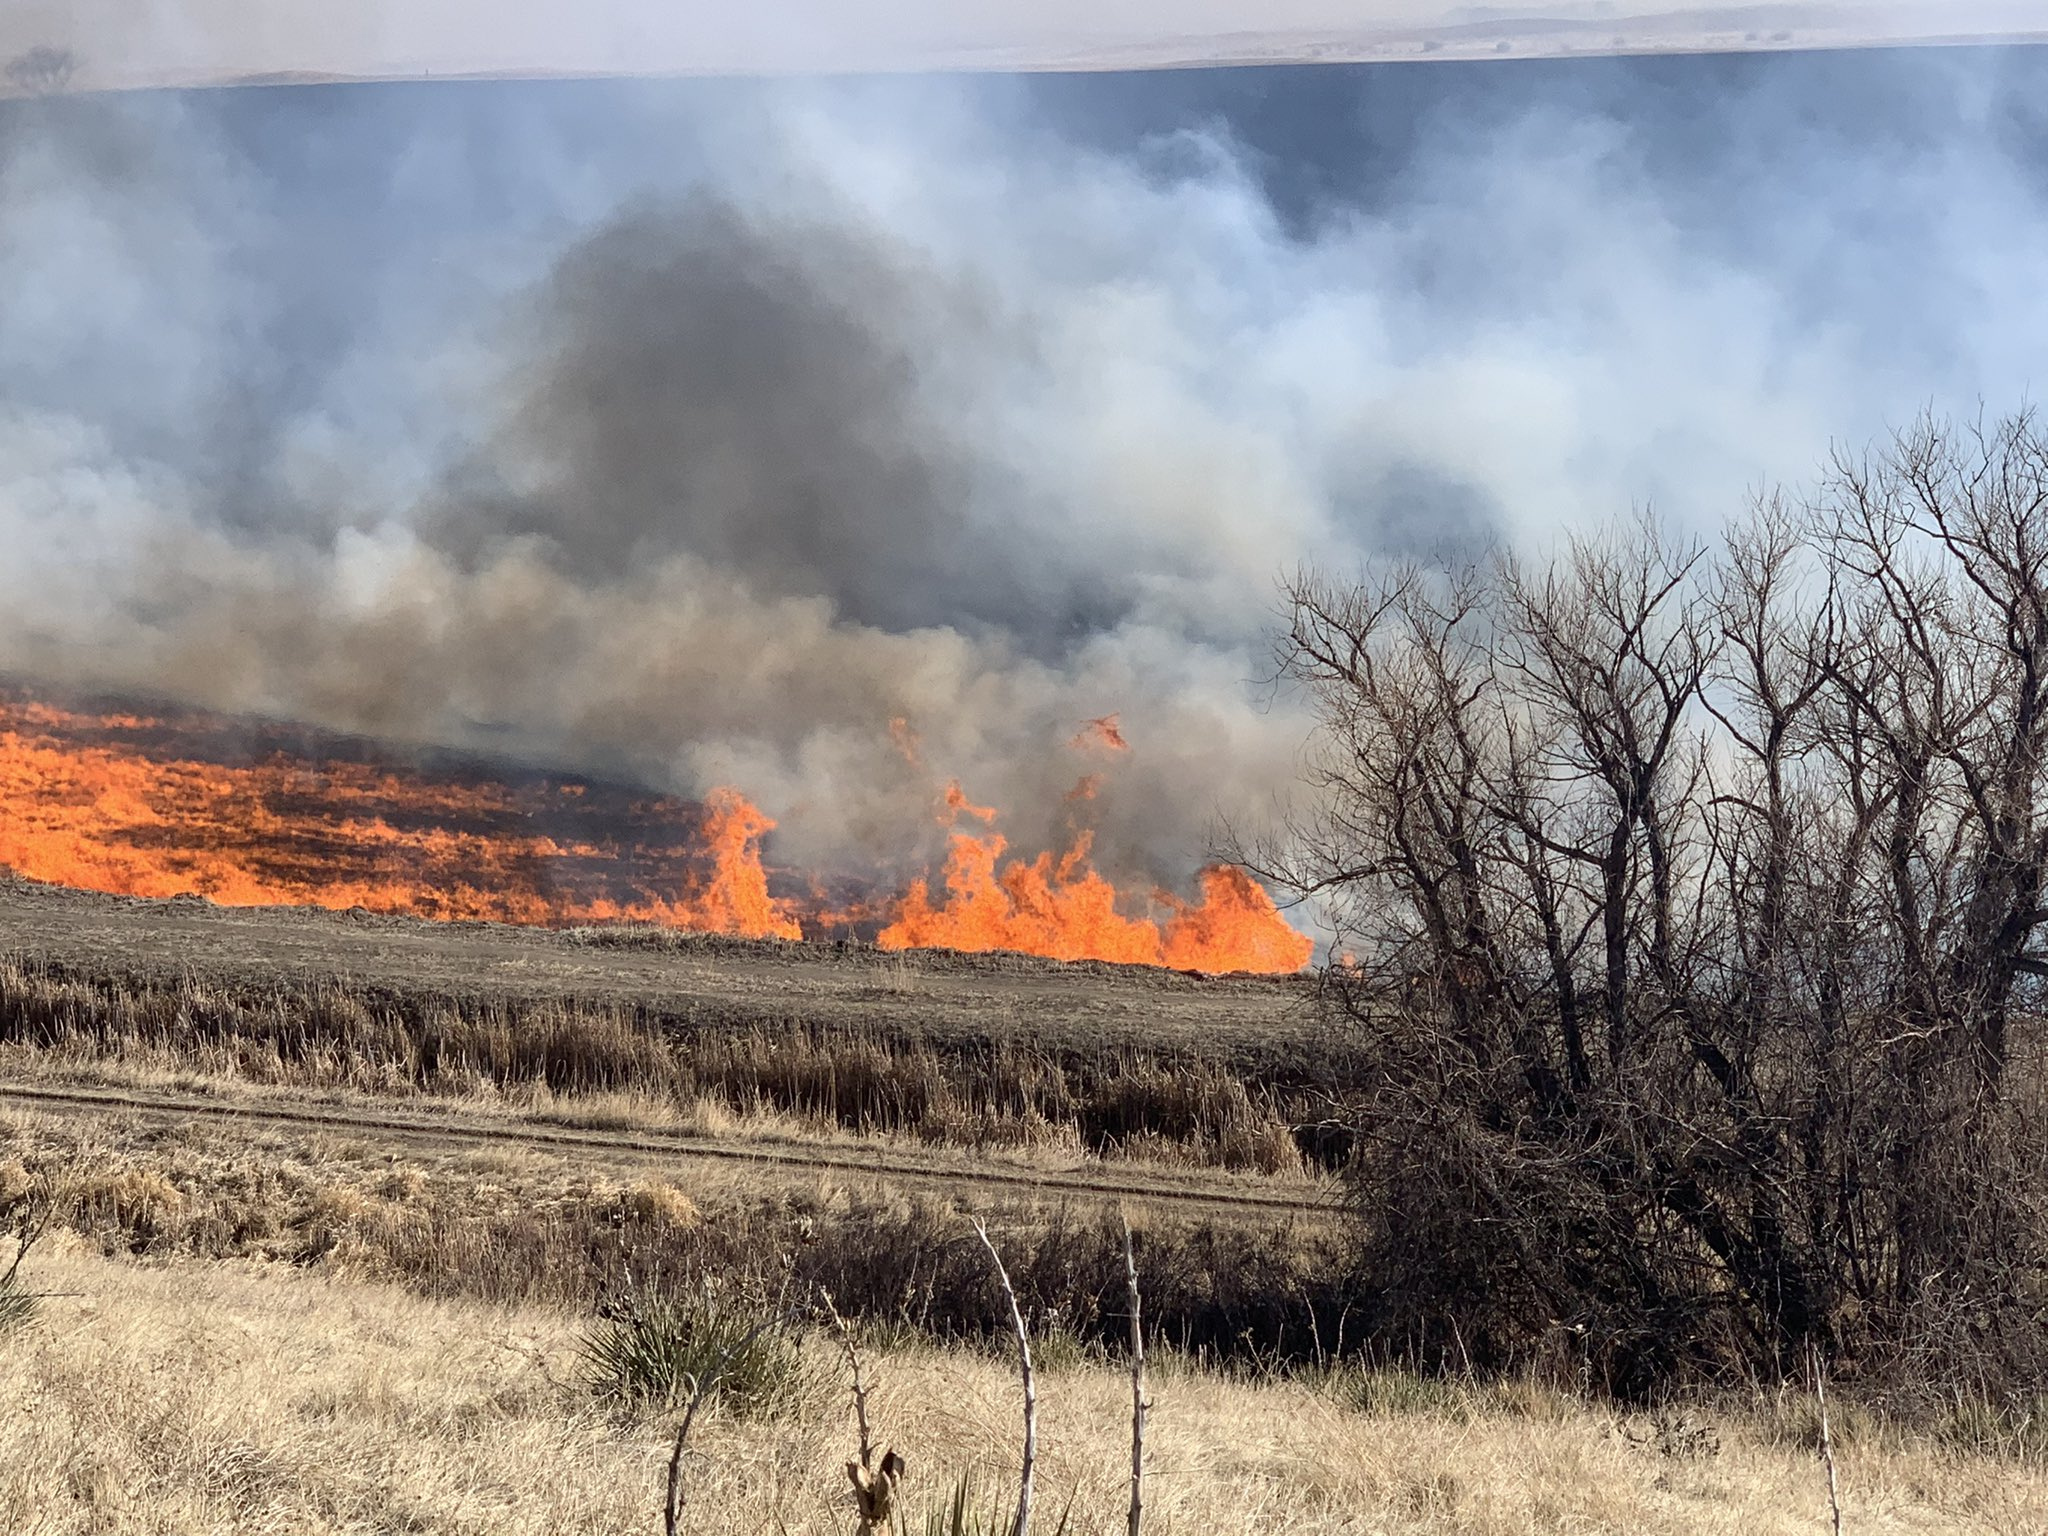 A 100-acre grass fire started near Fox Hollow Golf Course and Bear Creek Lake State Park in Lakewood on Sunday, Feb. 7, 2020.